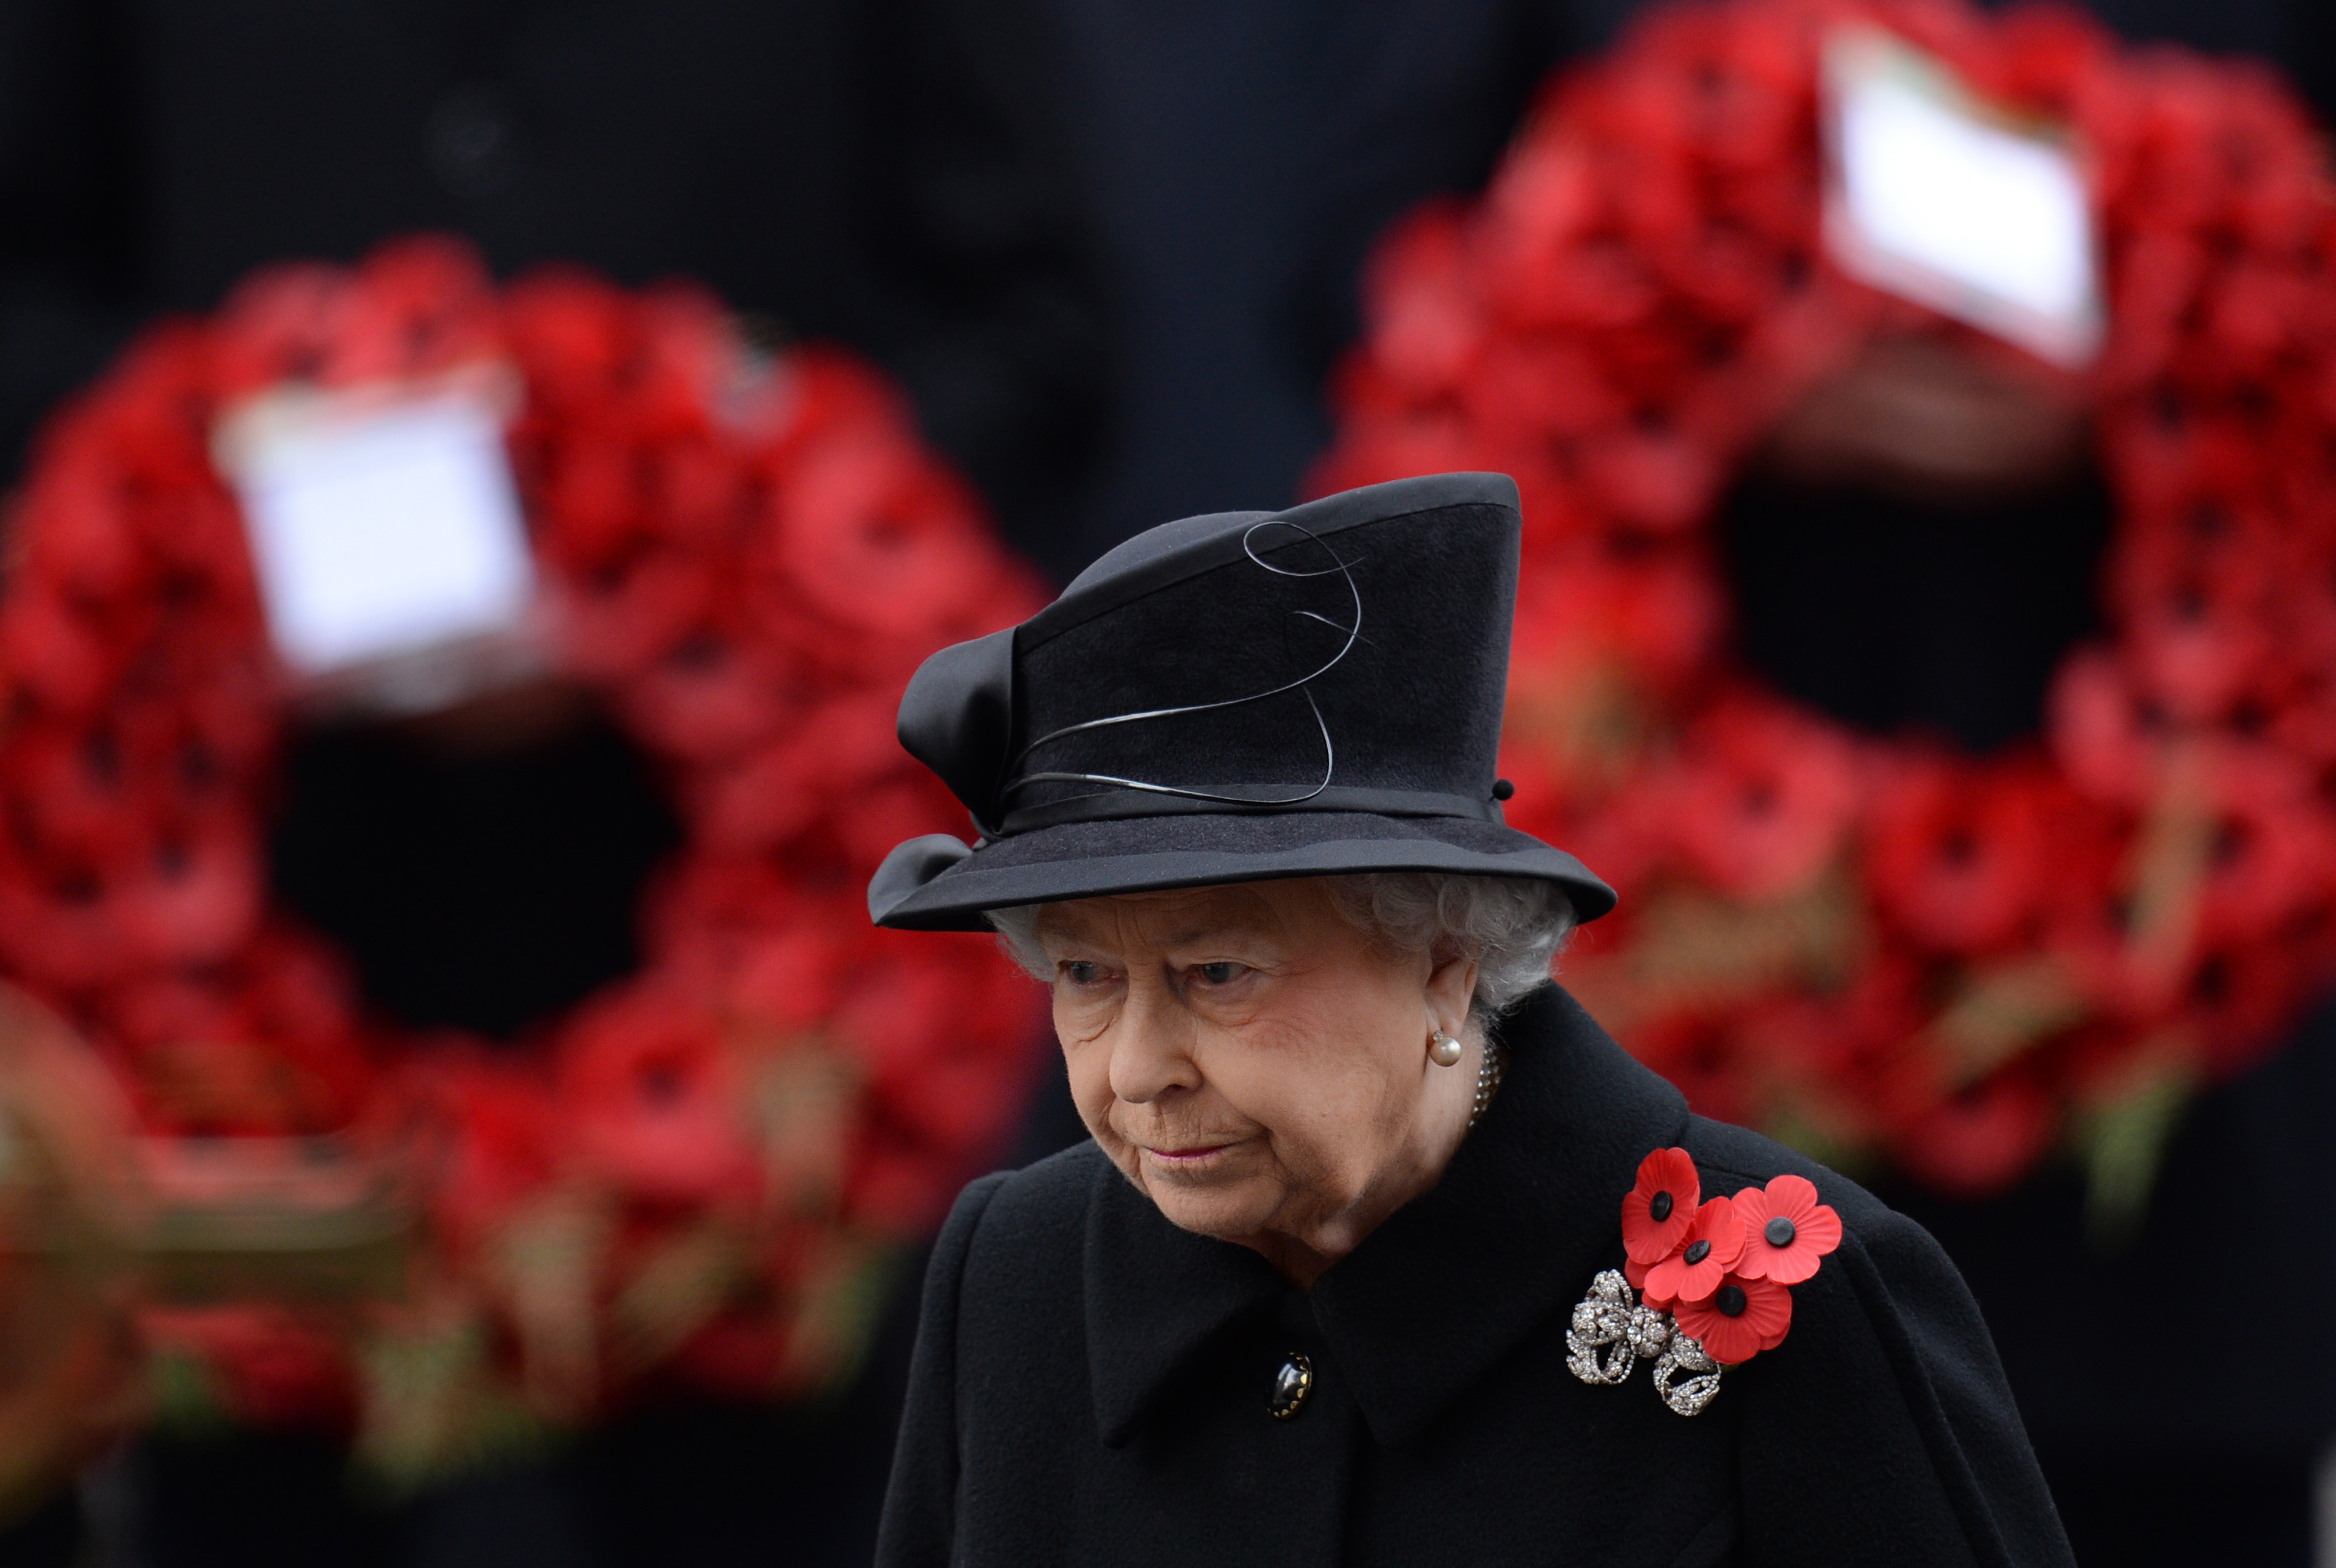 The Queen at the Cenotaph in 2014